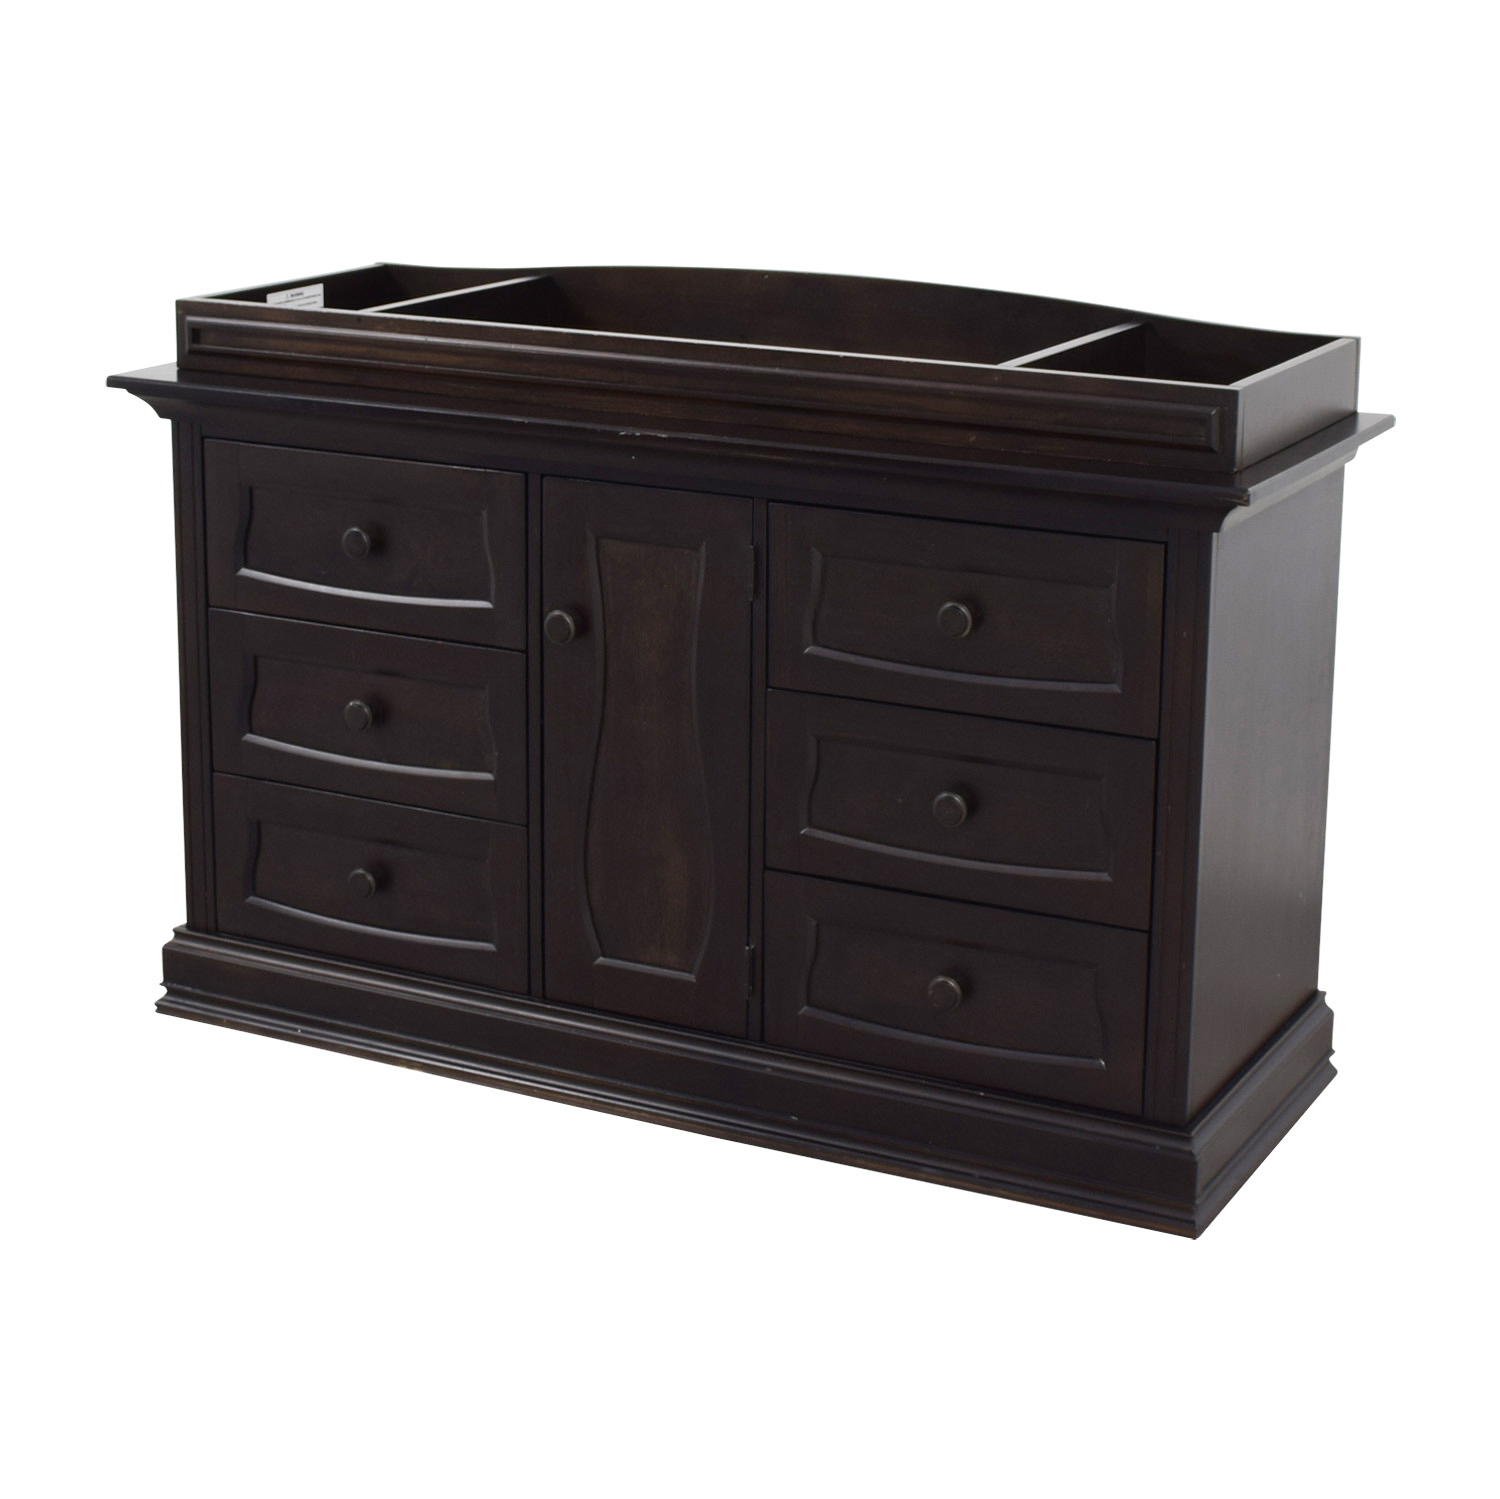 eco chic furniture. Eco Chic Baby Dorchester Six-Drawer Dresser Furniture A